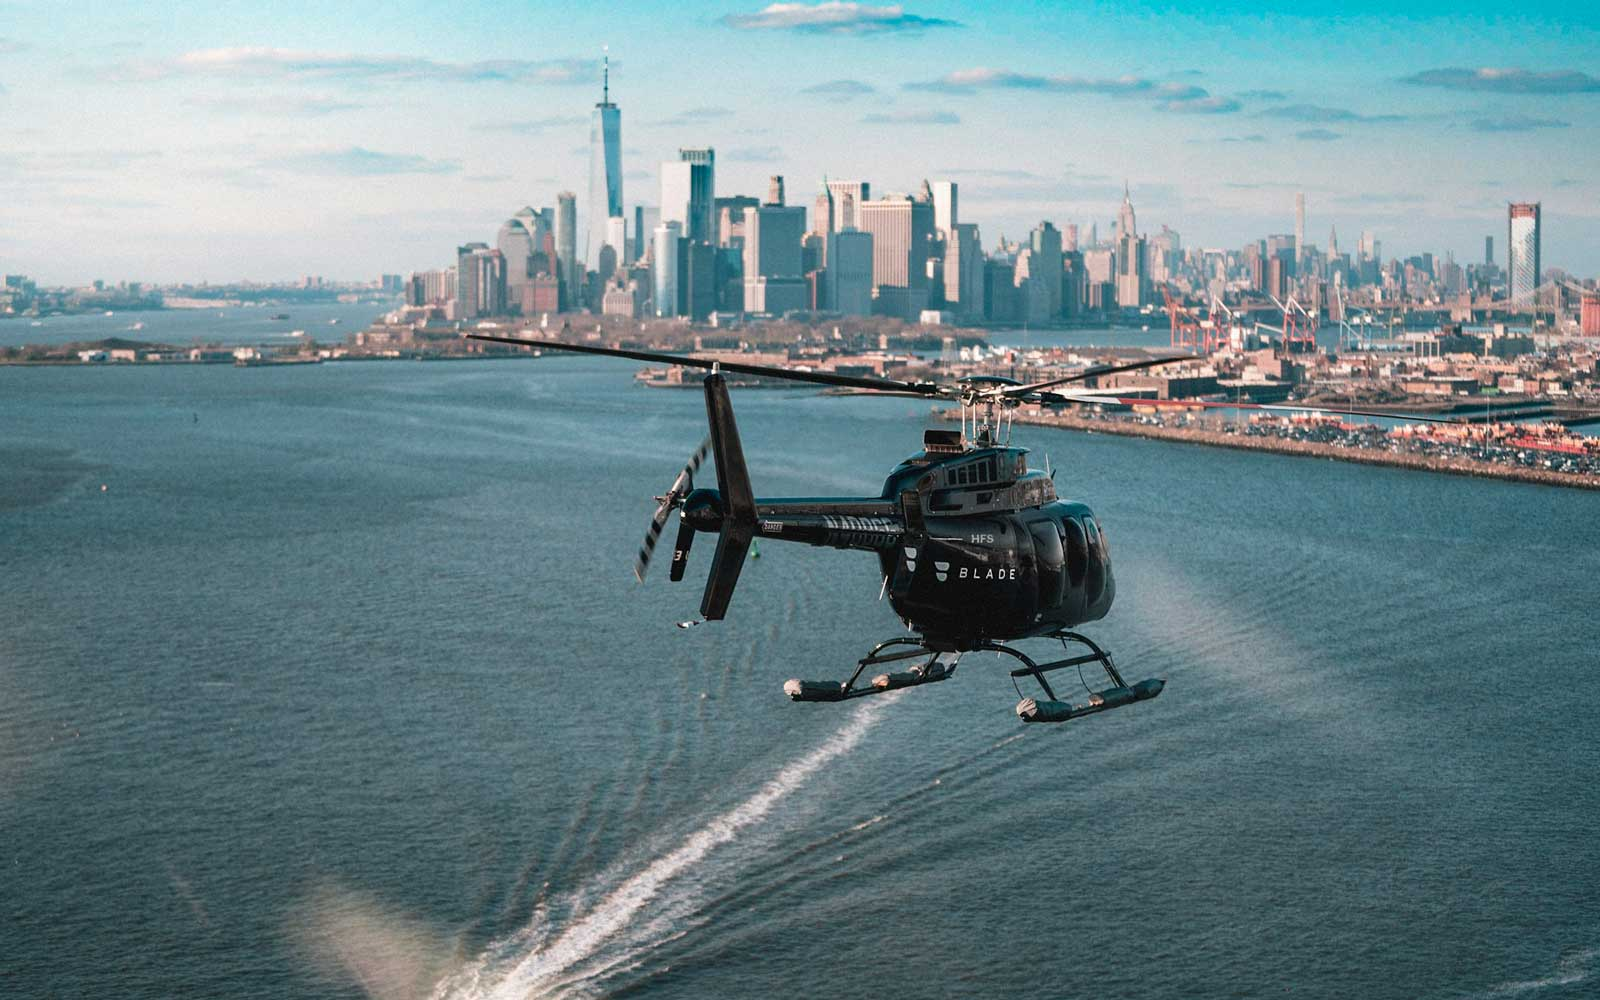 Amazing: Chopper To JFK For $98 PP With Buy One Get One 'Blade' Deal